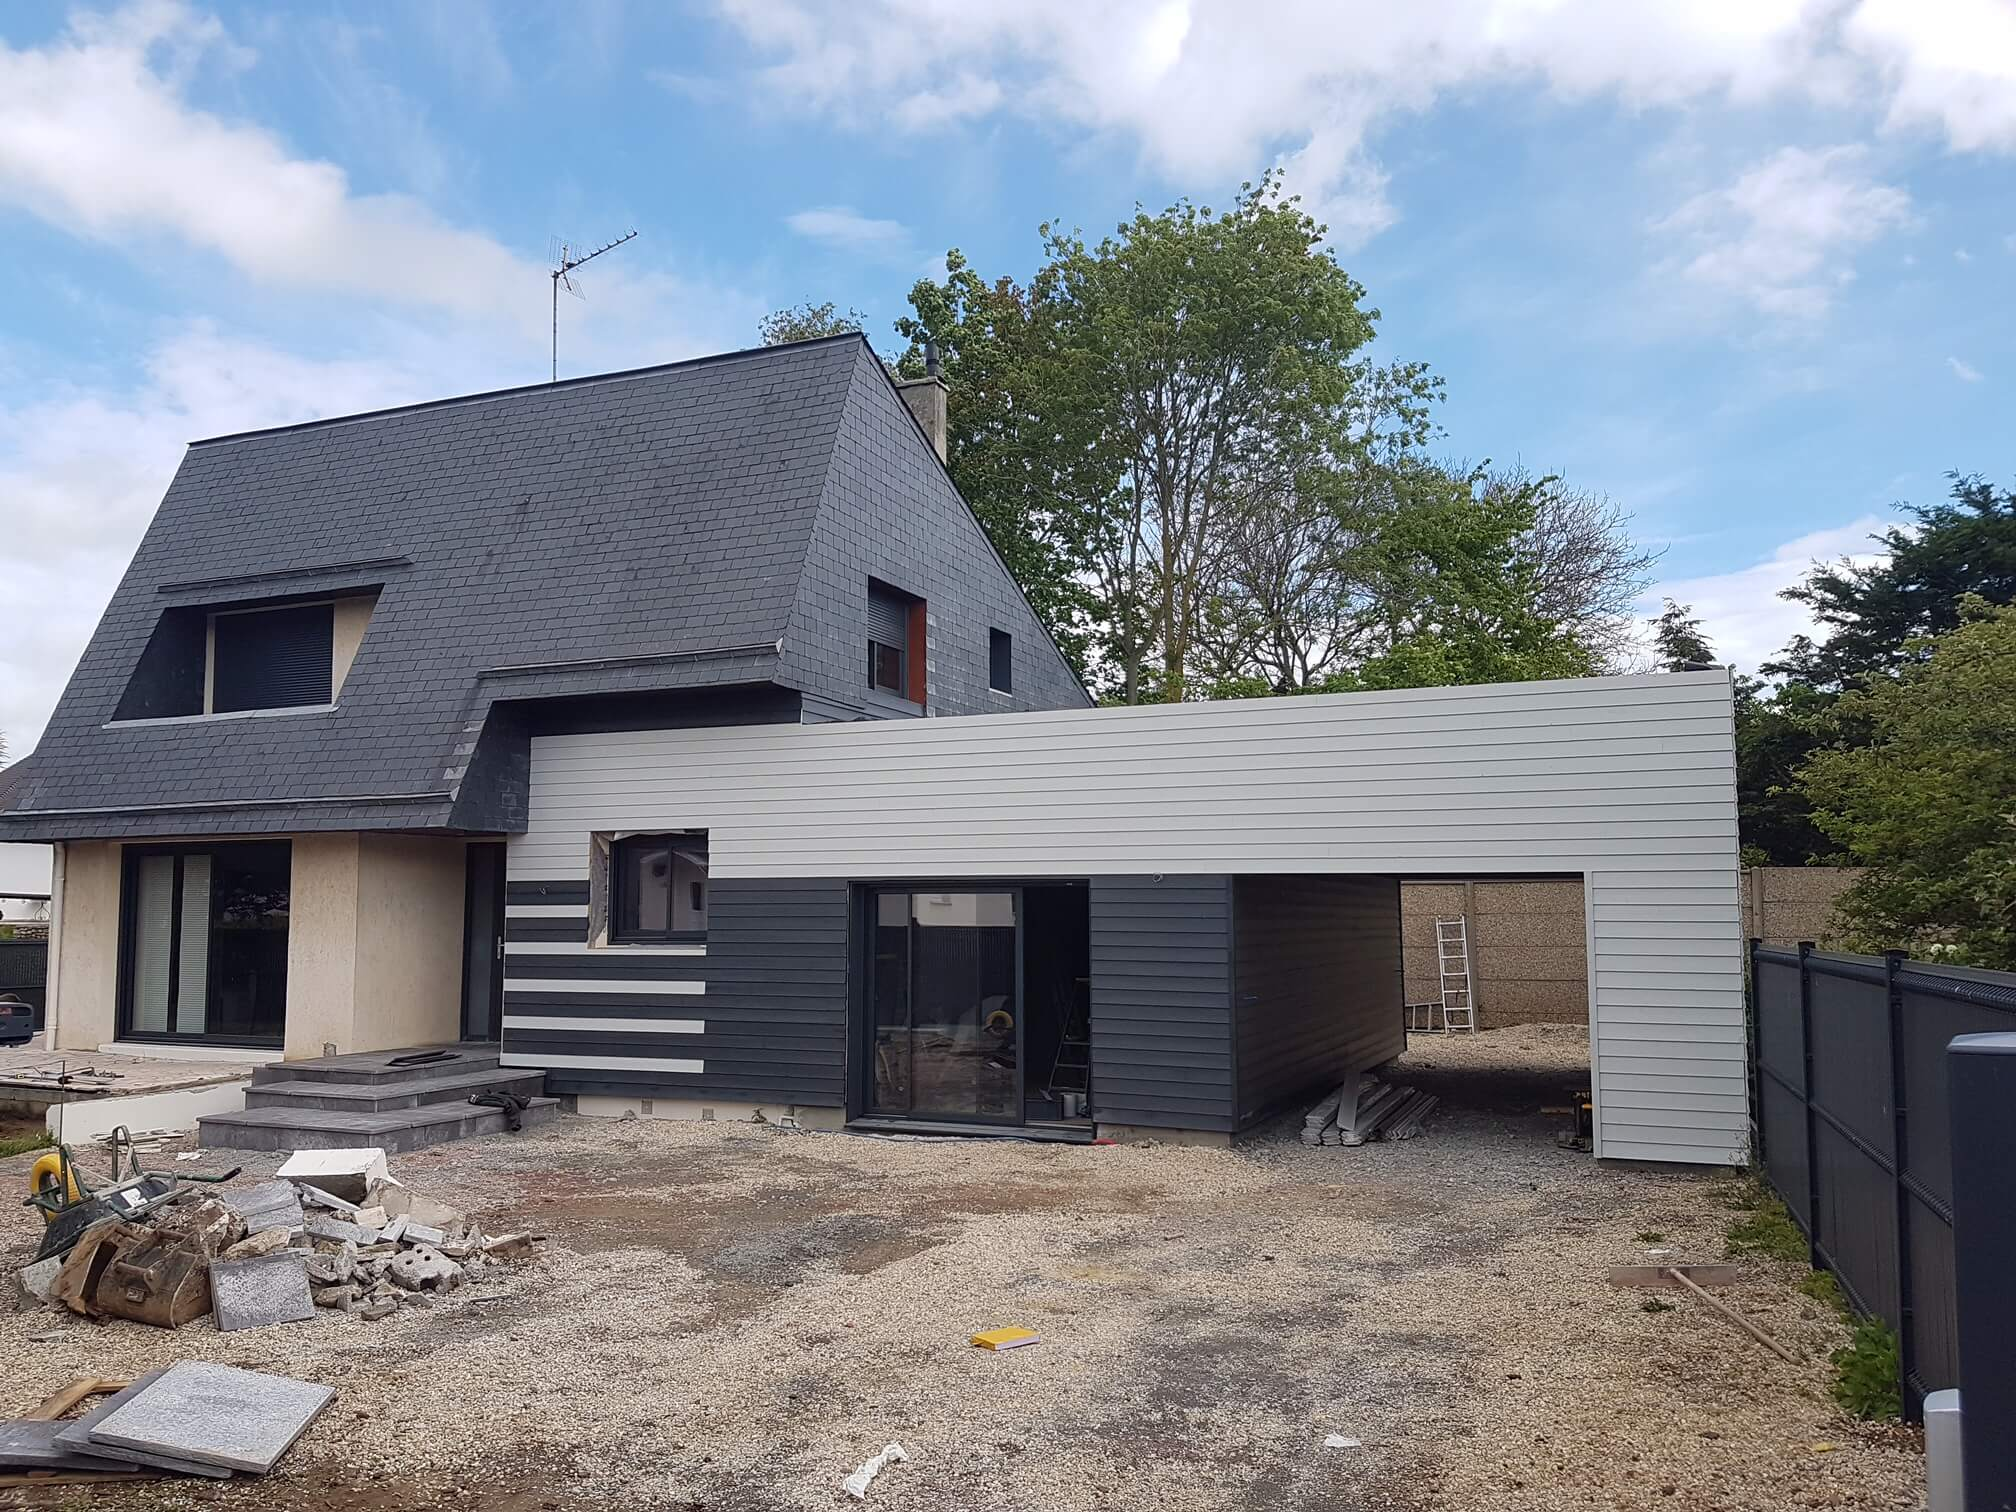 Ossature bois upstructures caen for Extension etage ossature bois